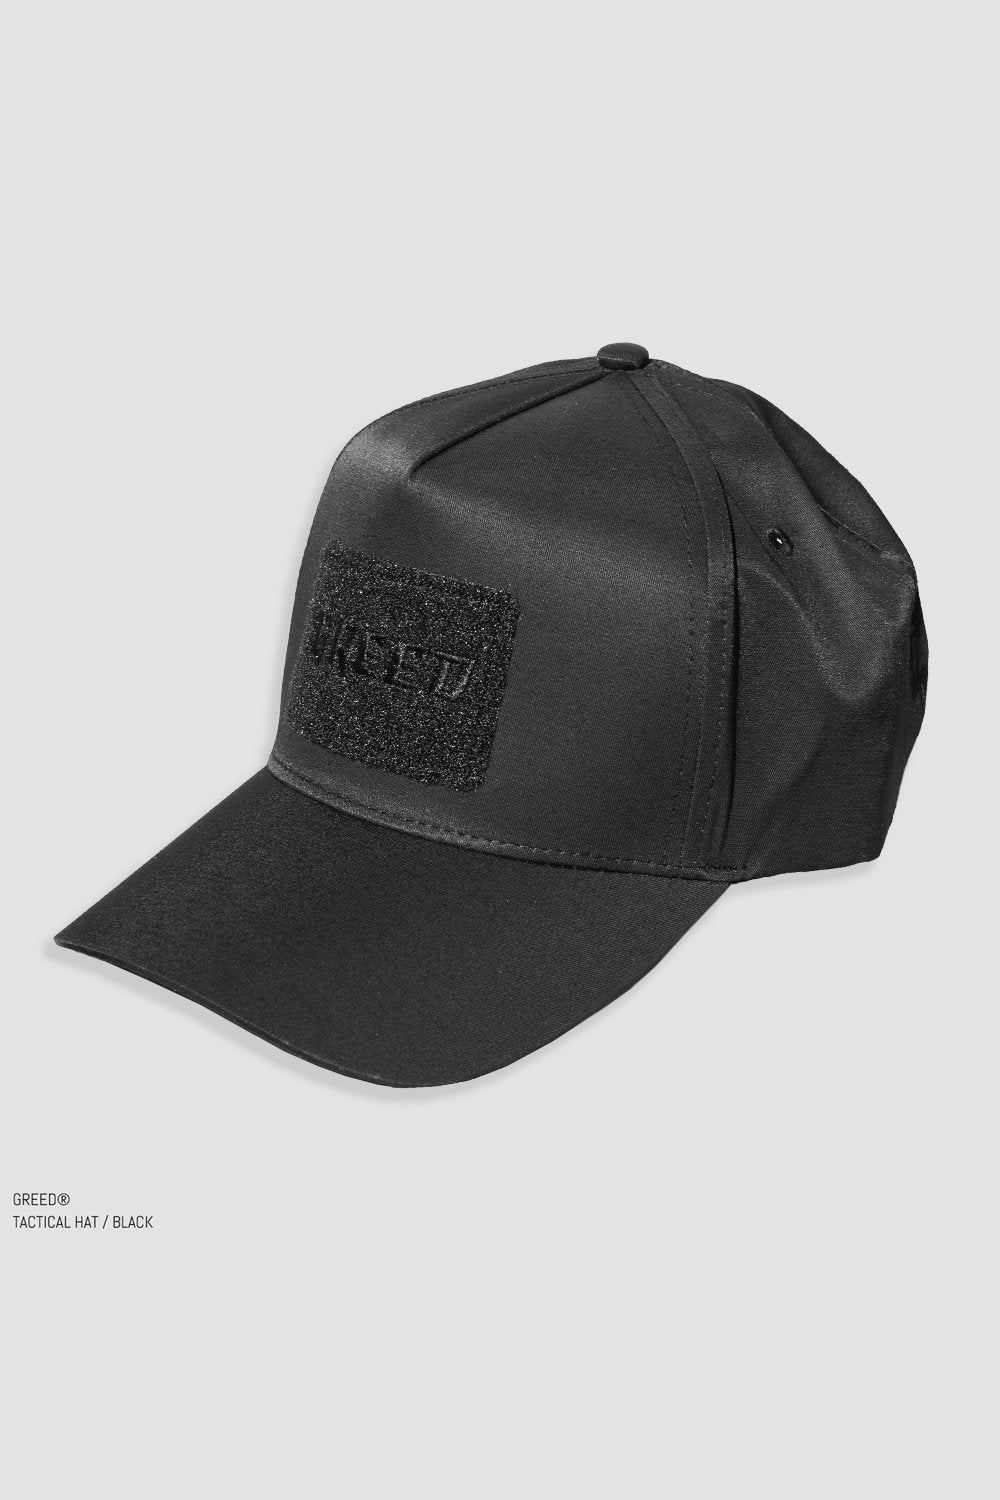 GREED Tactical Hat